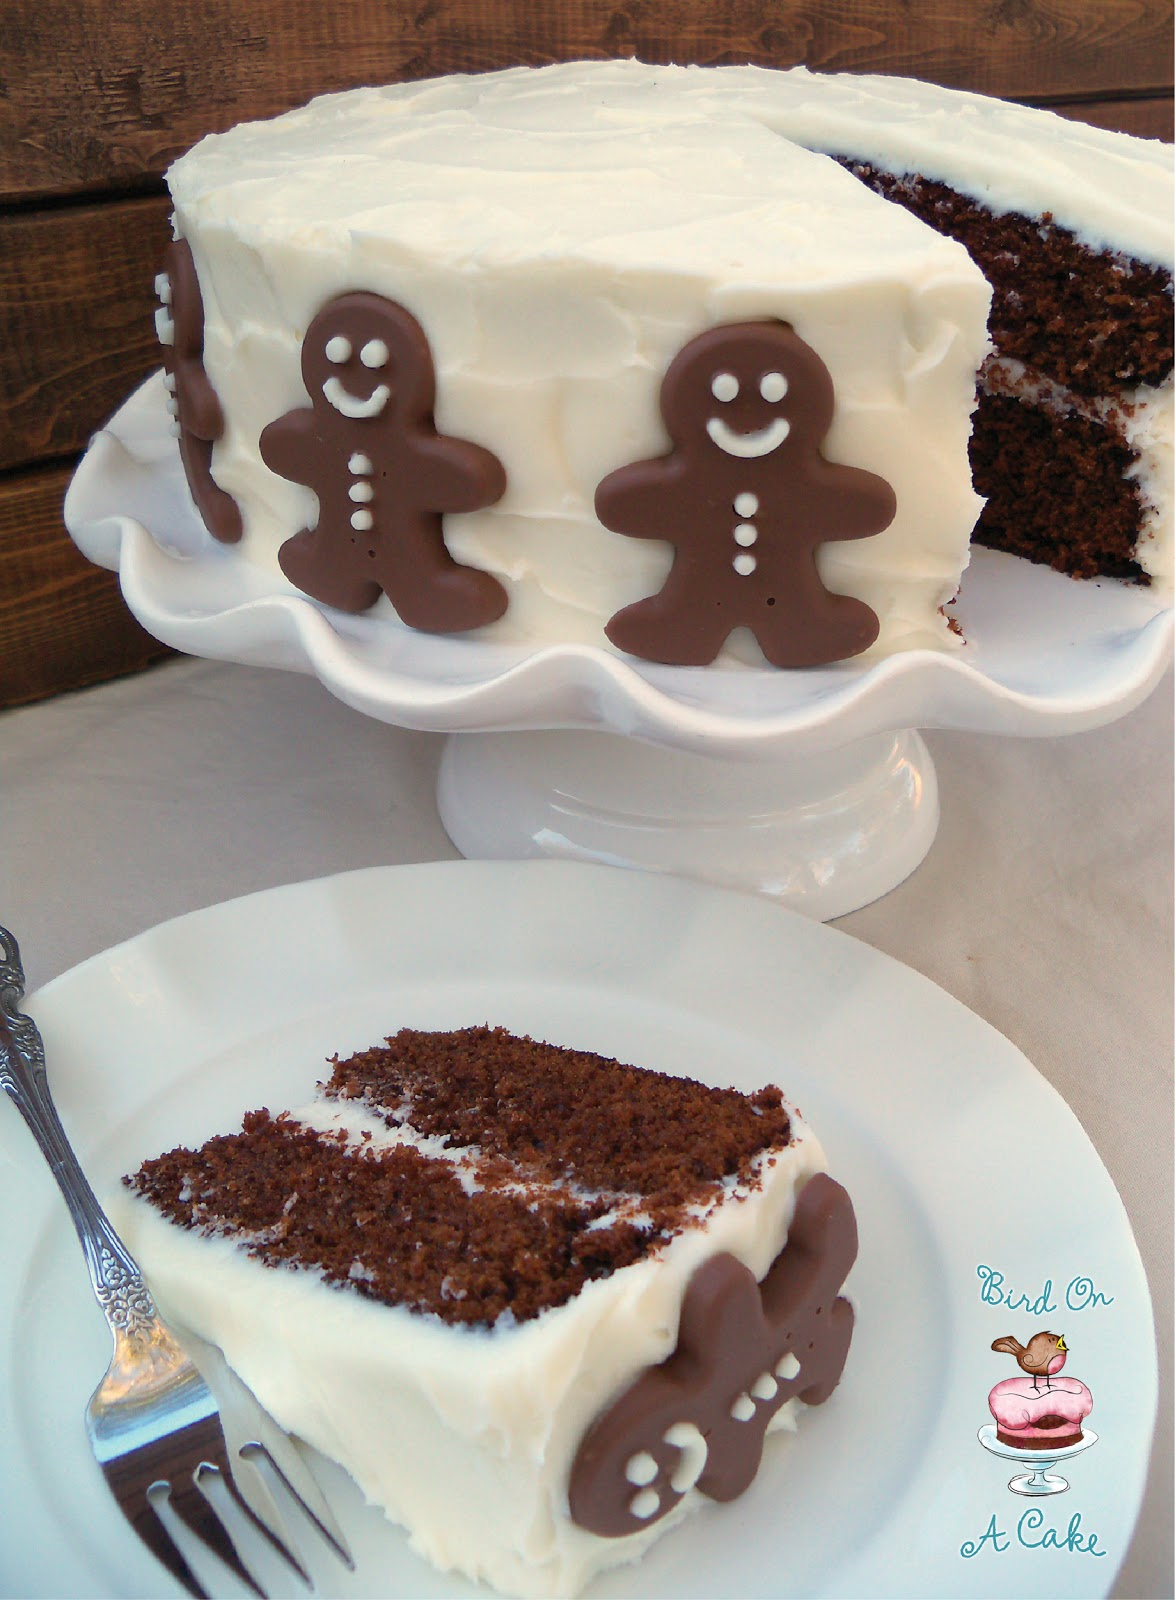 Bird On A Cake: Give the Gift of Gingerbread - Blog Hop & Giveaway!